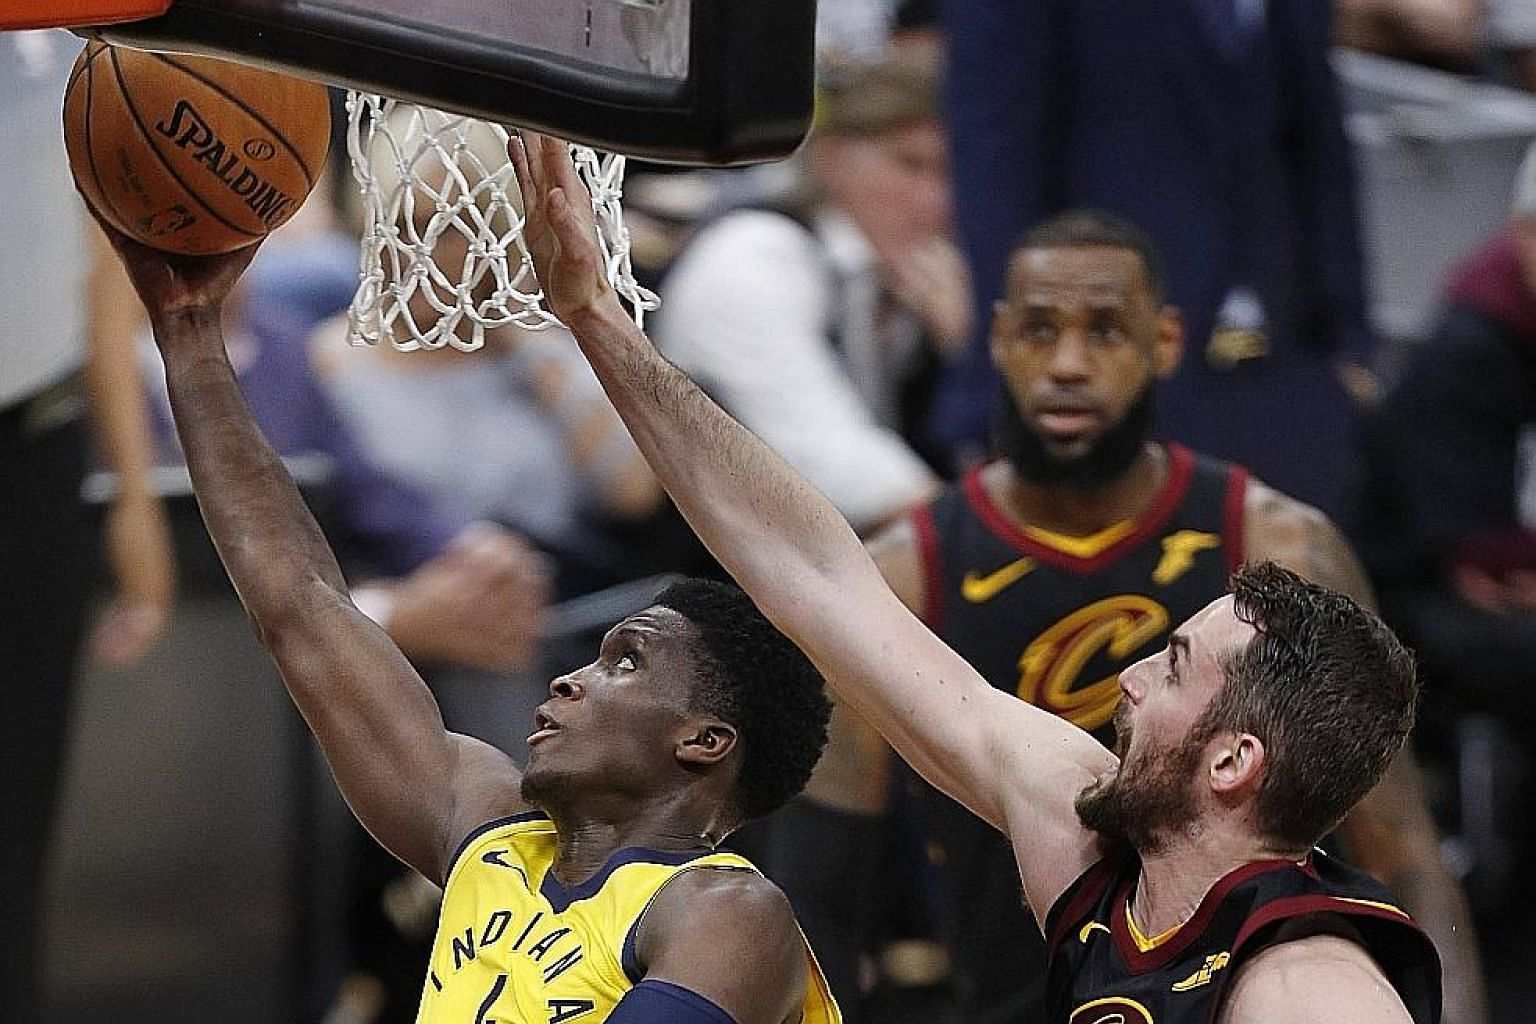 Victor Oladipo of the Indiana Pacers driving to the basket against the Cleveland Cavaliers' Kevin Love as LeBron James looks on. The Pacers defeated the Cavaliers 98-80 in Game 1 of the first round of their NBA Eastern Conference play-off series, wit